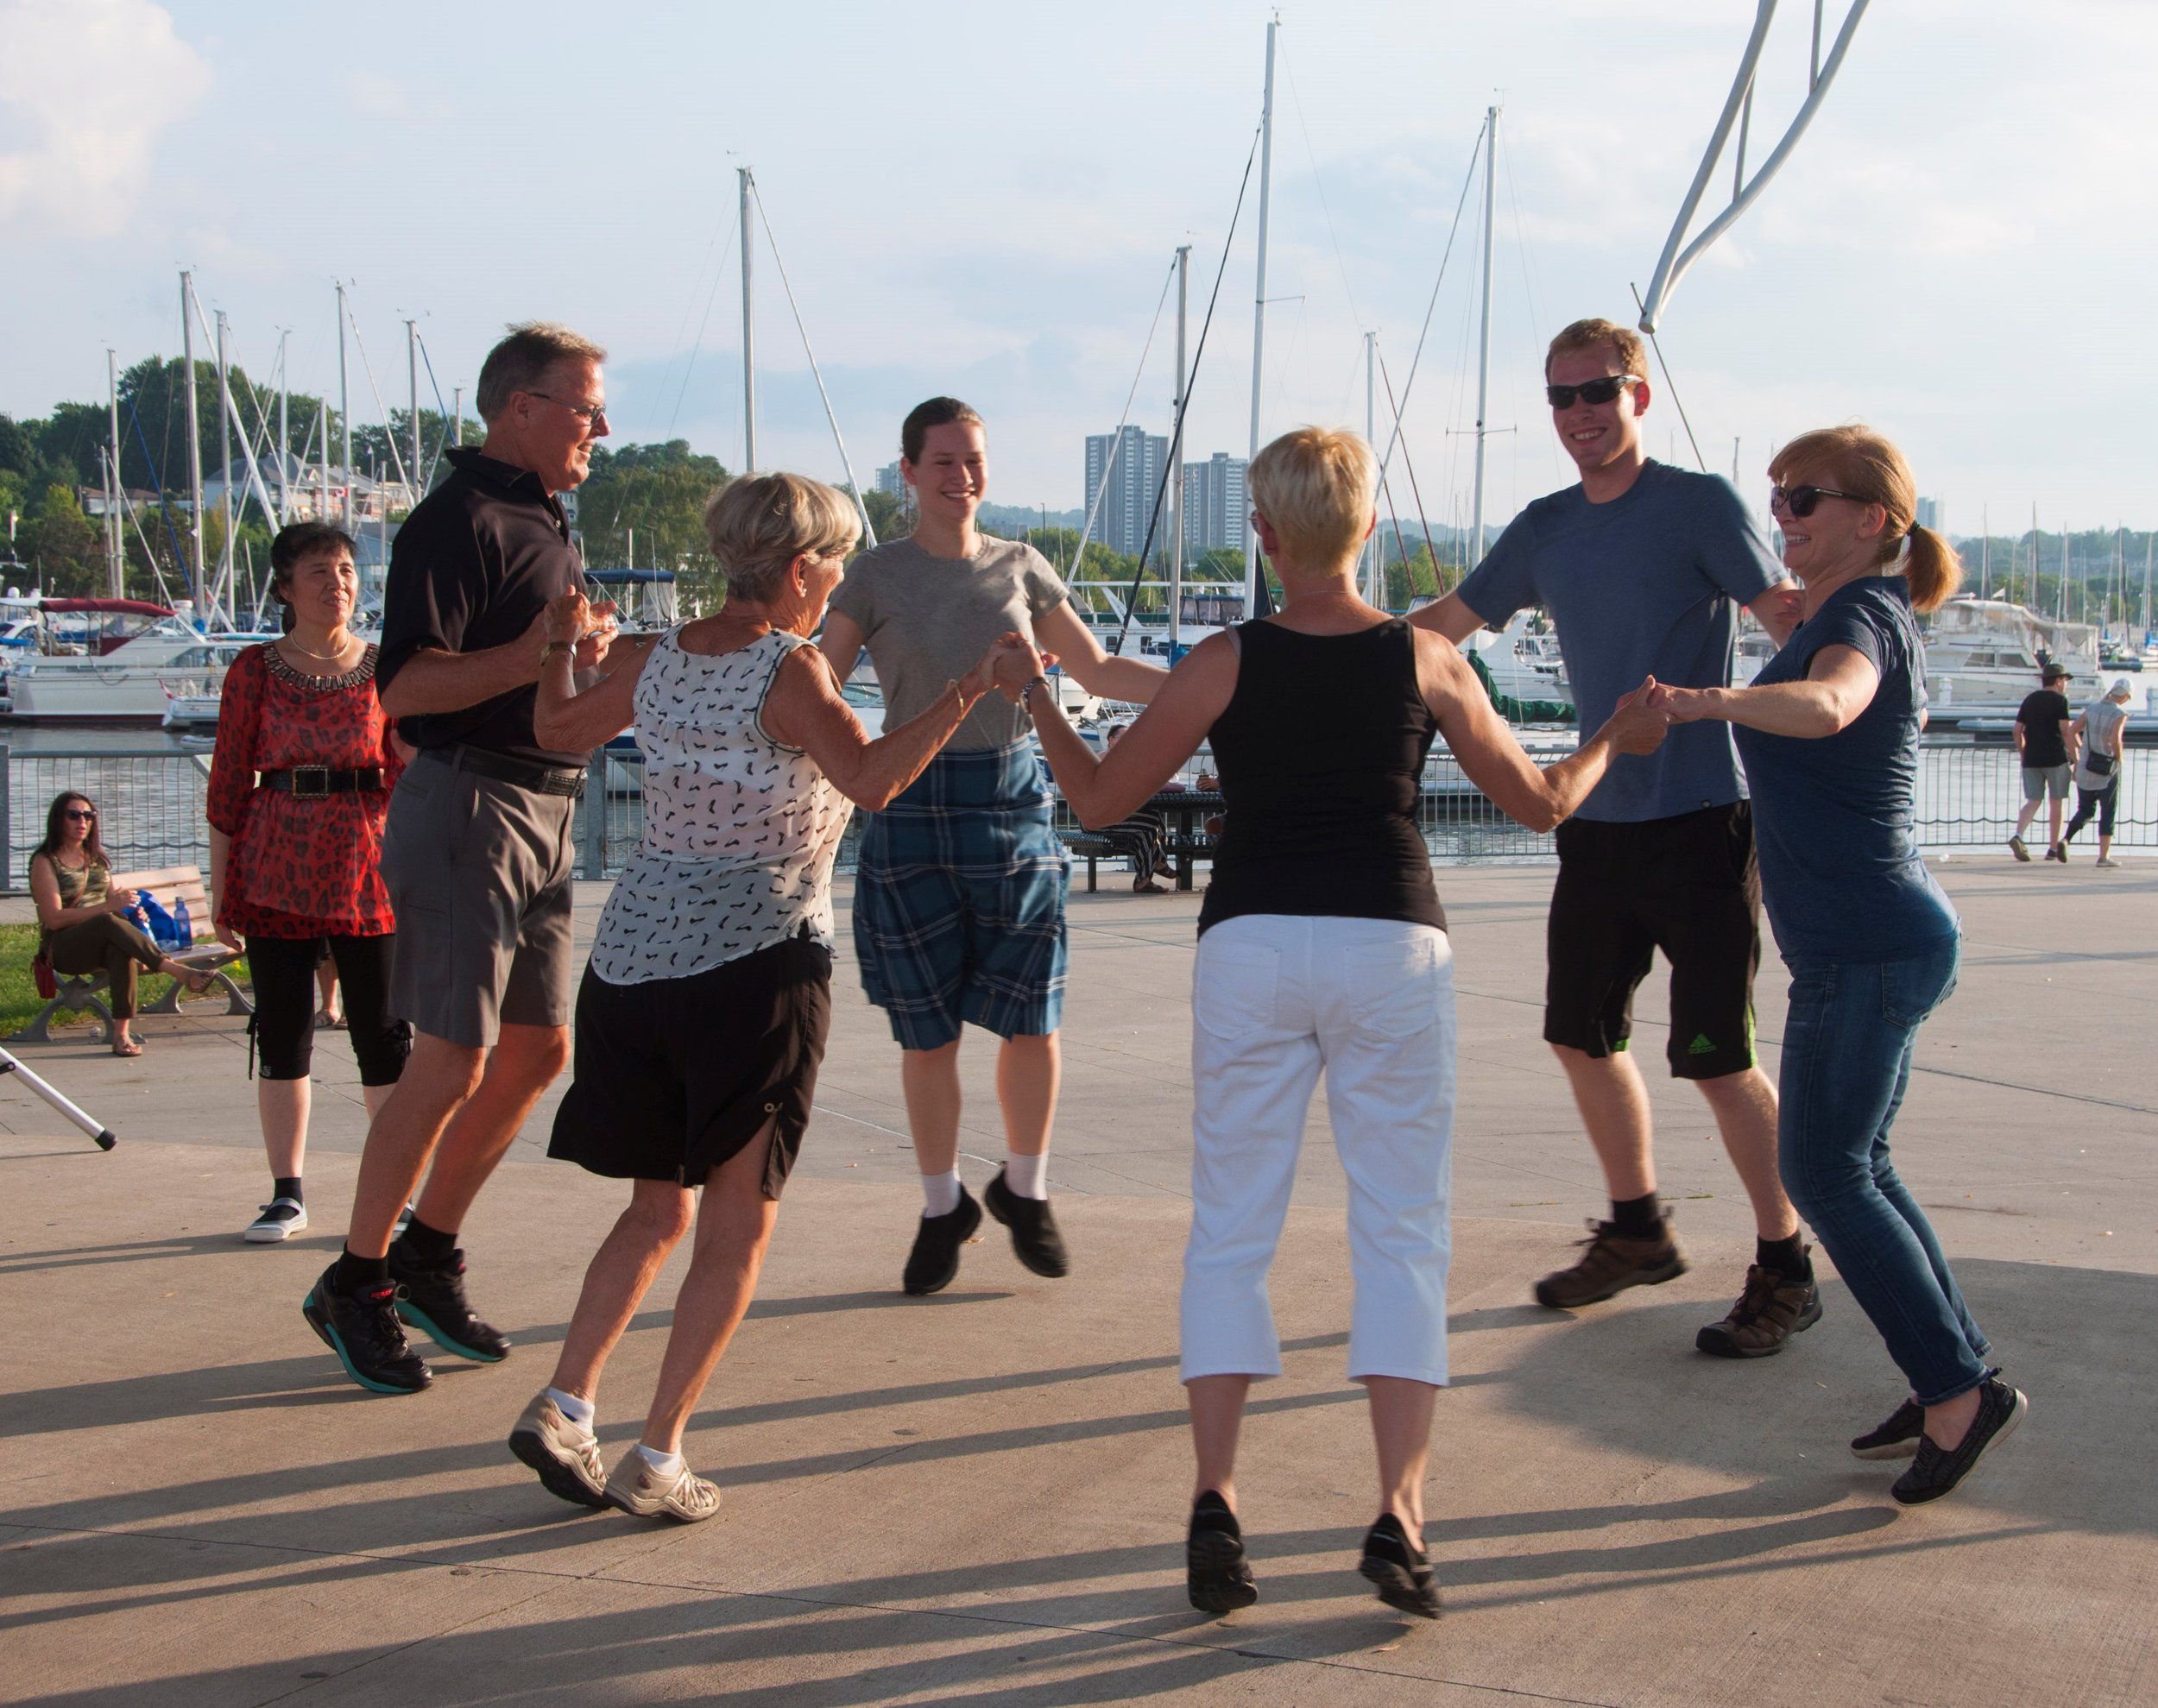 DancingOnTheDockPhotoCropped.jpg